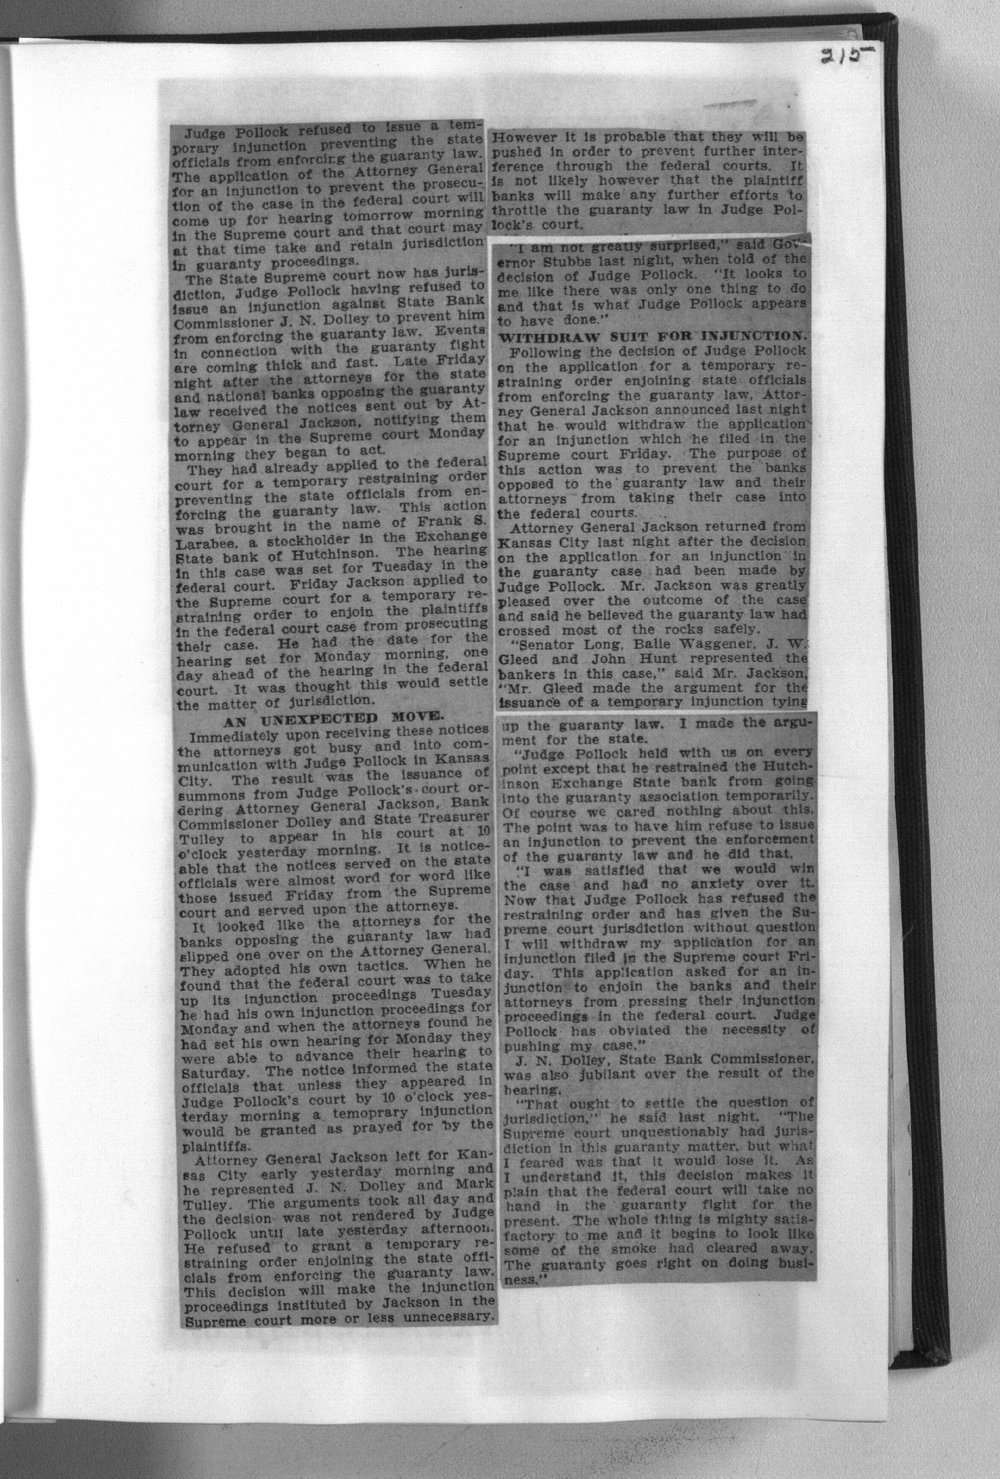 Banks and banking newspaper articles - 215